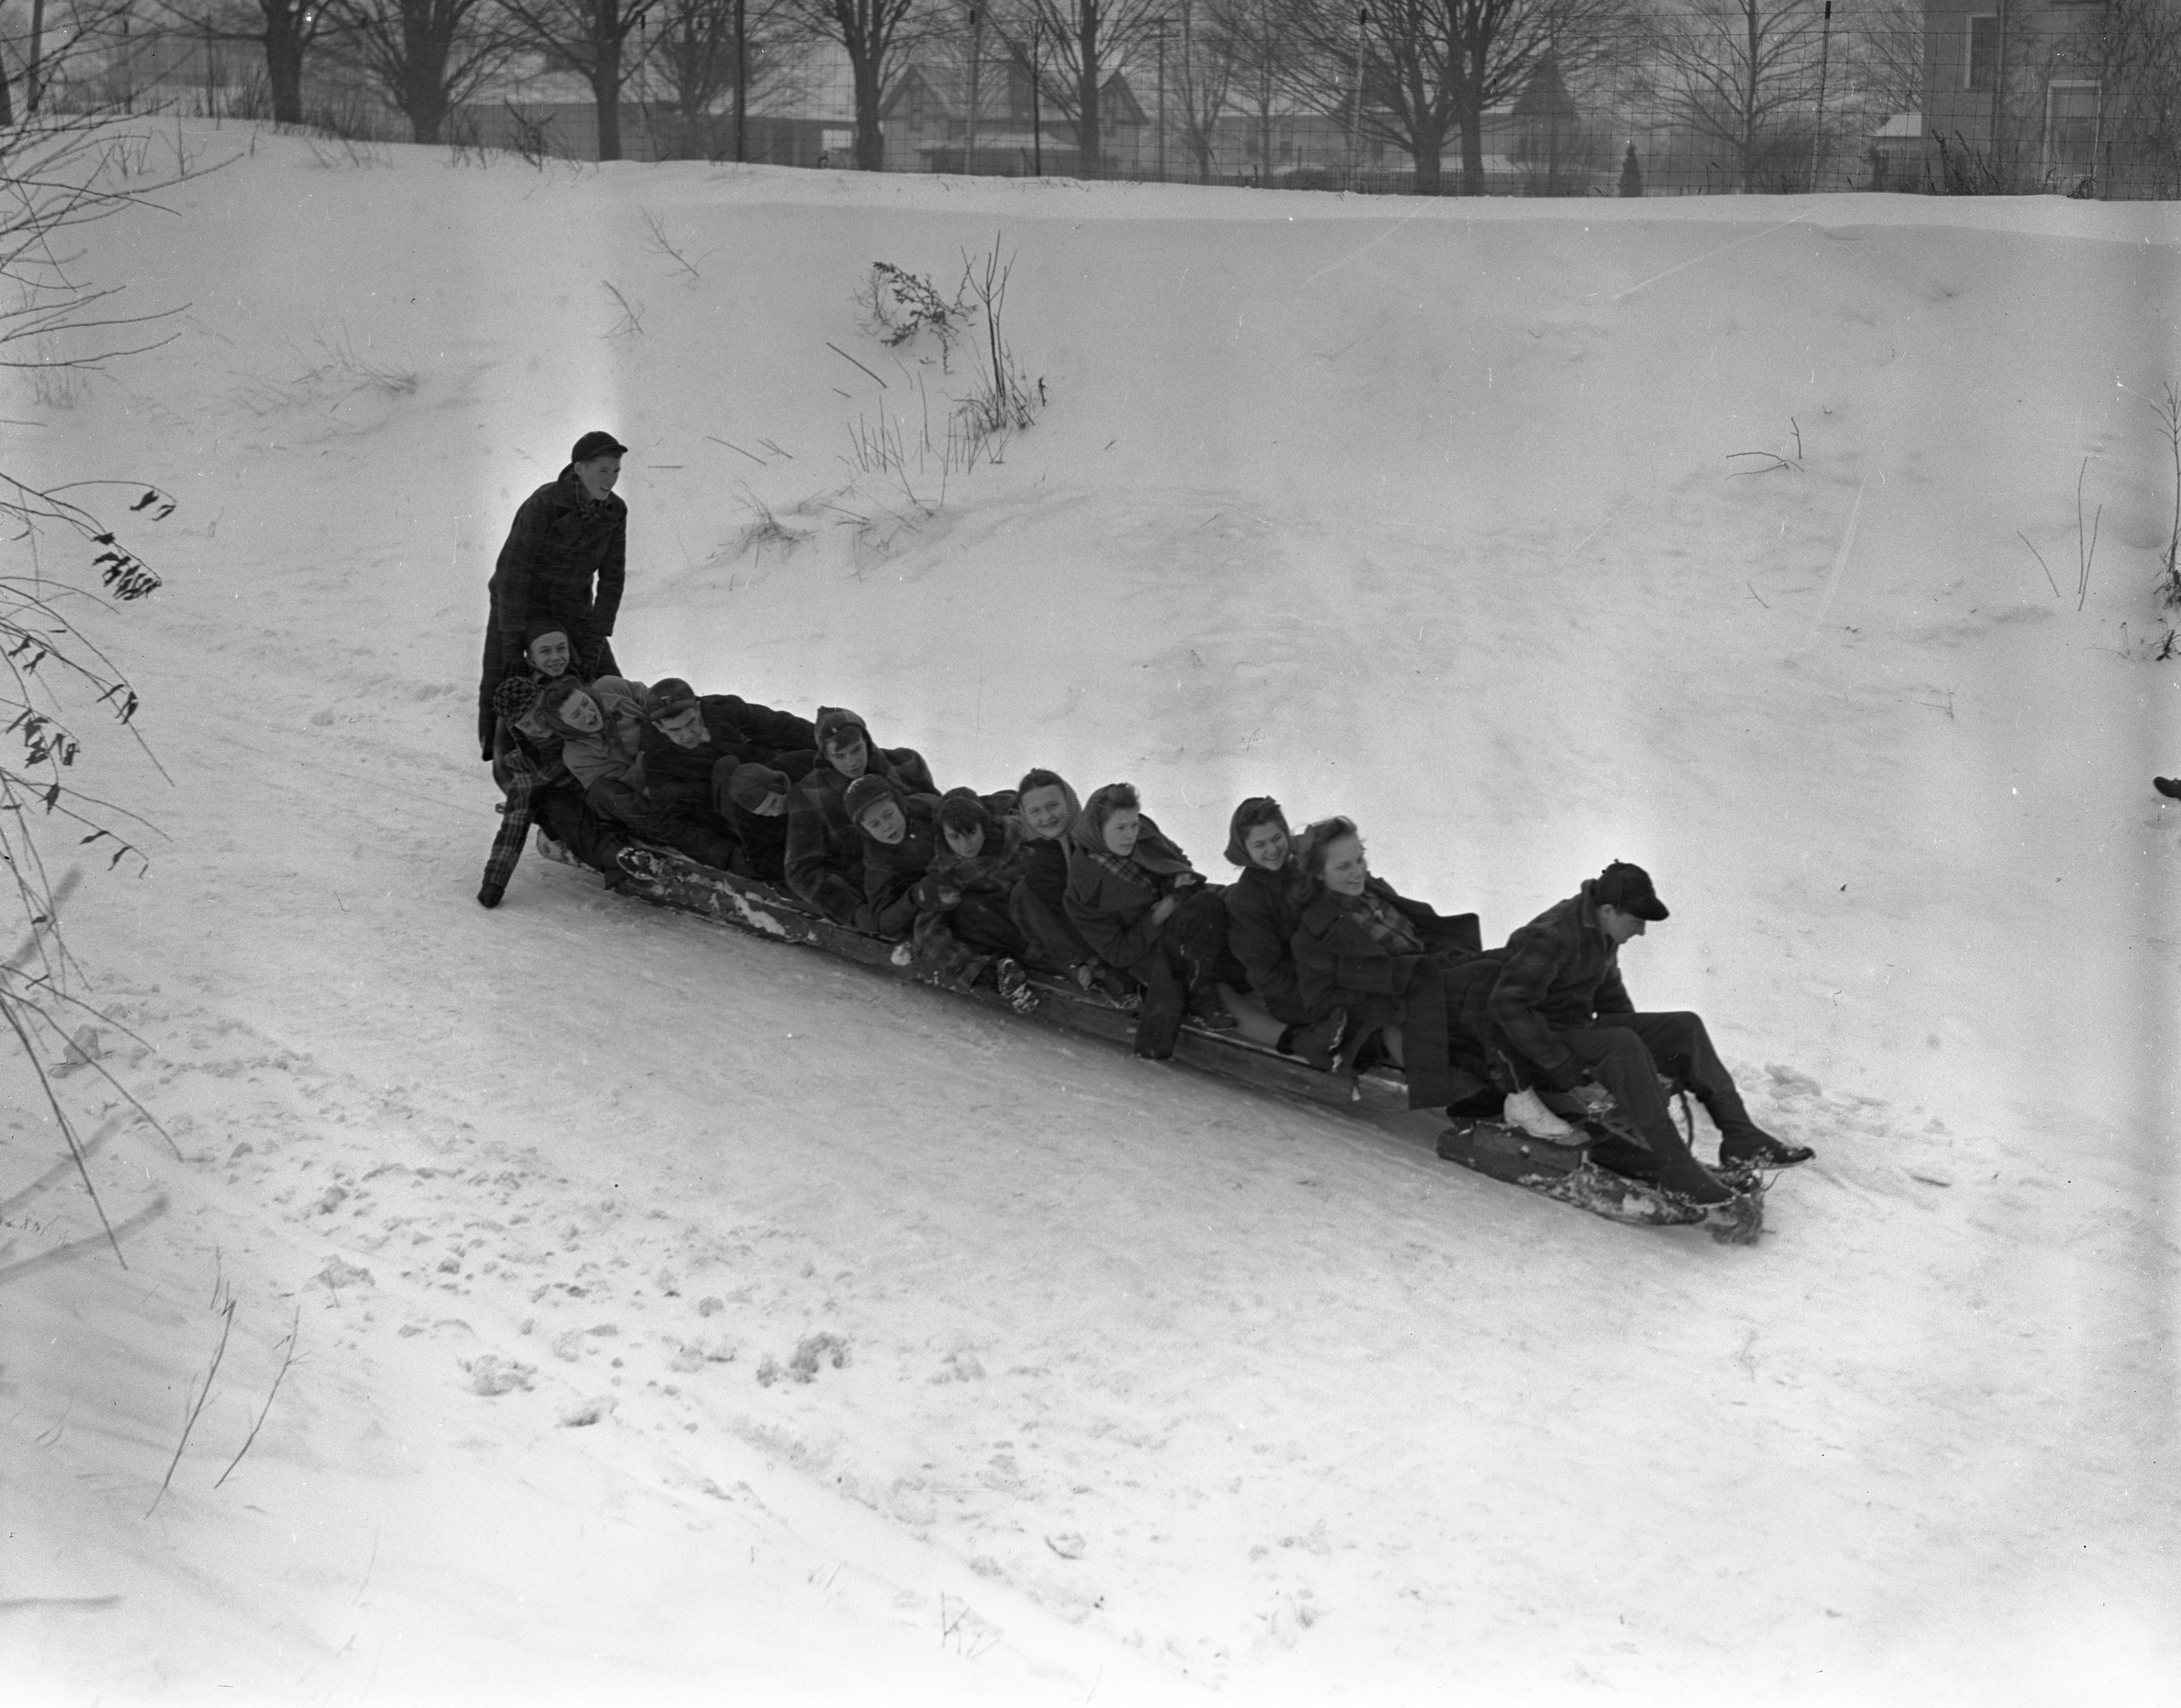 Overloaded Bobsled In Charlevoix Seen From Above, February 1940 image